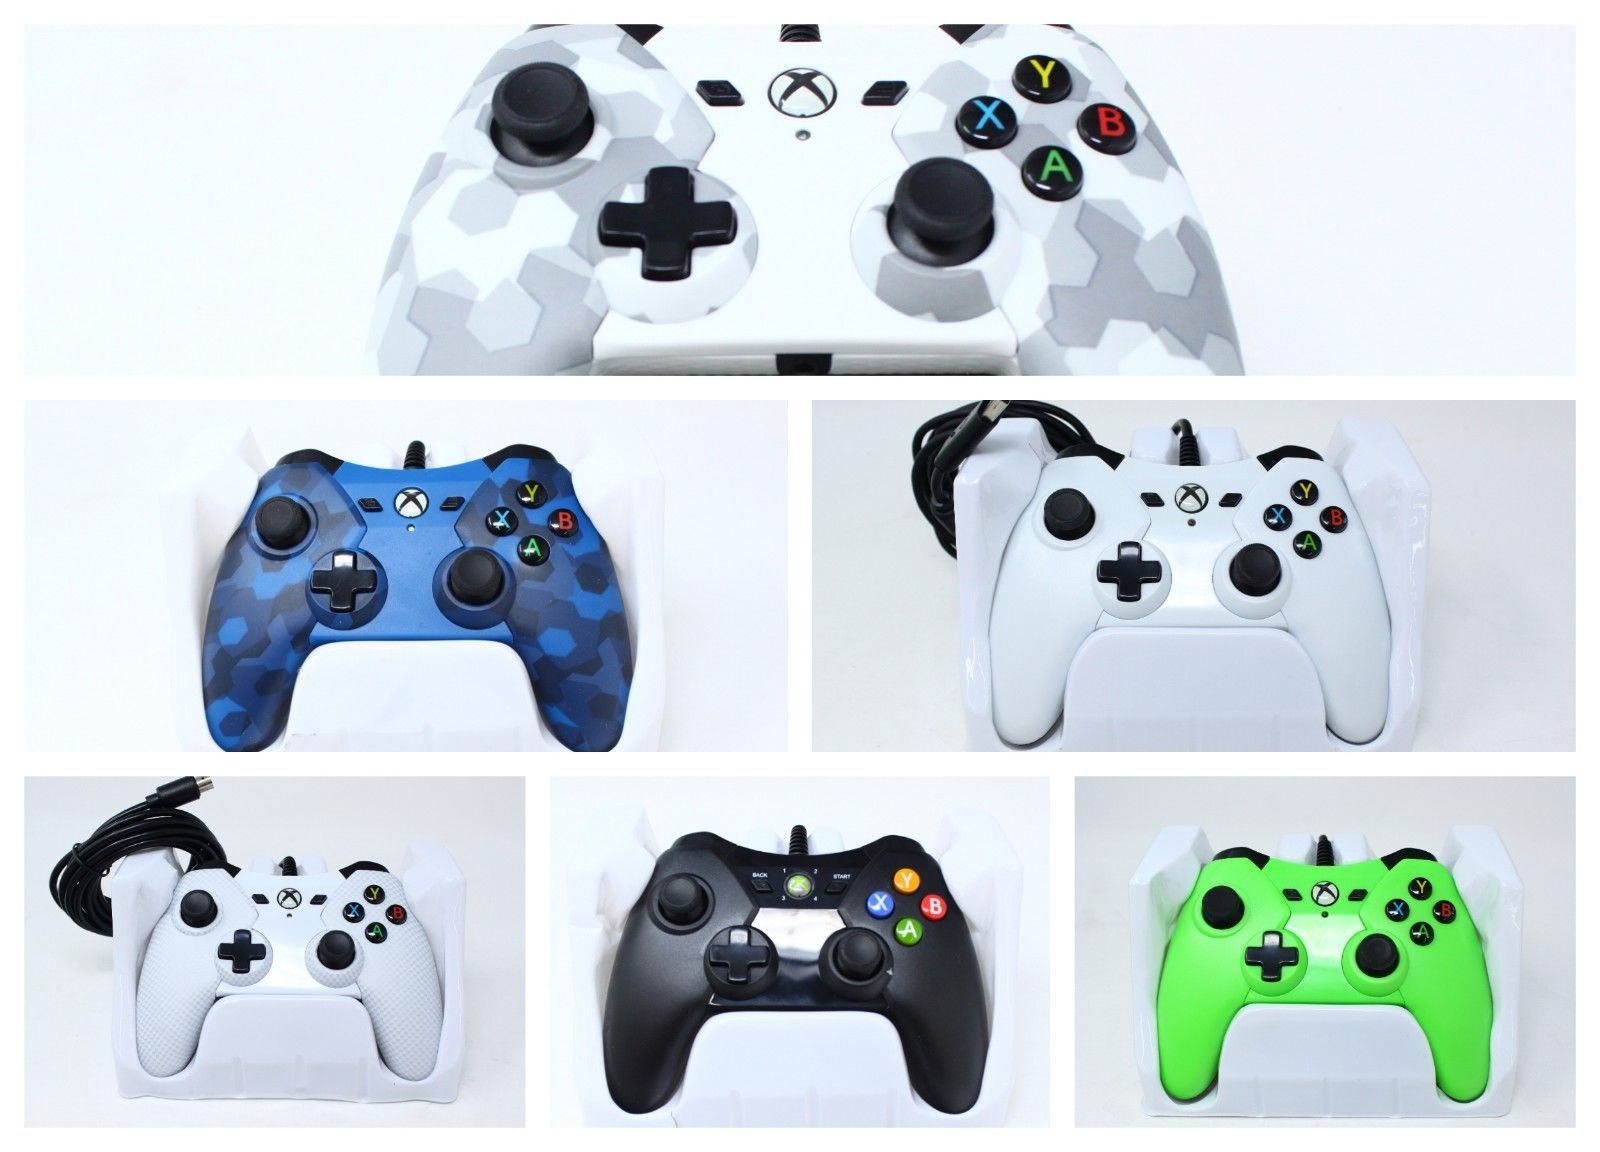 power a wired gaming controller for xbox one and windows 10 multi colors buy it now only 17 99 on ebay video accessories power wired gaming  [ 1600 x 1152 Pixel ]